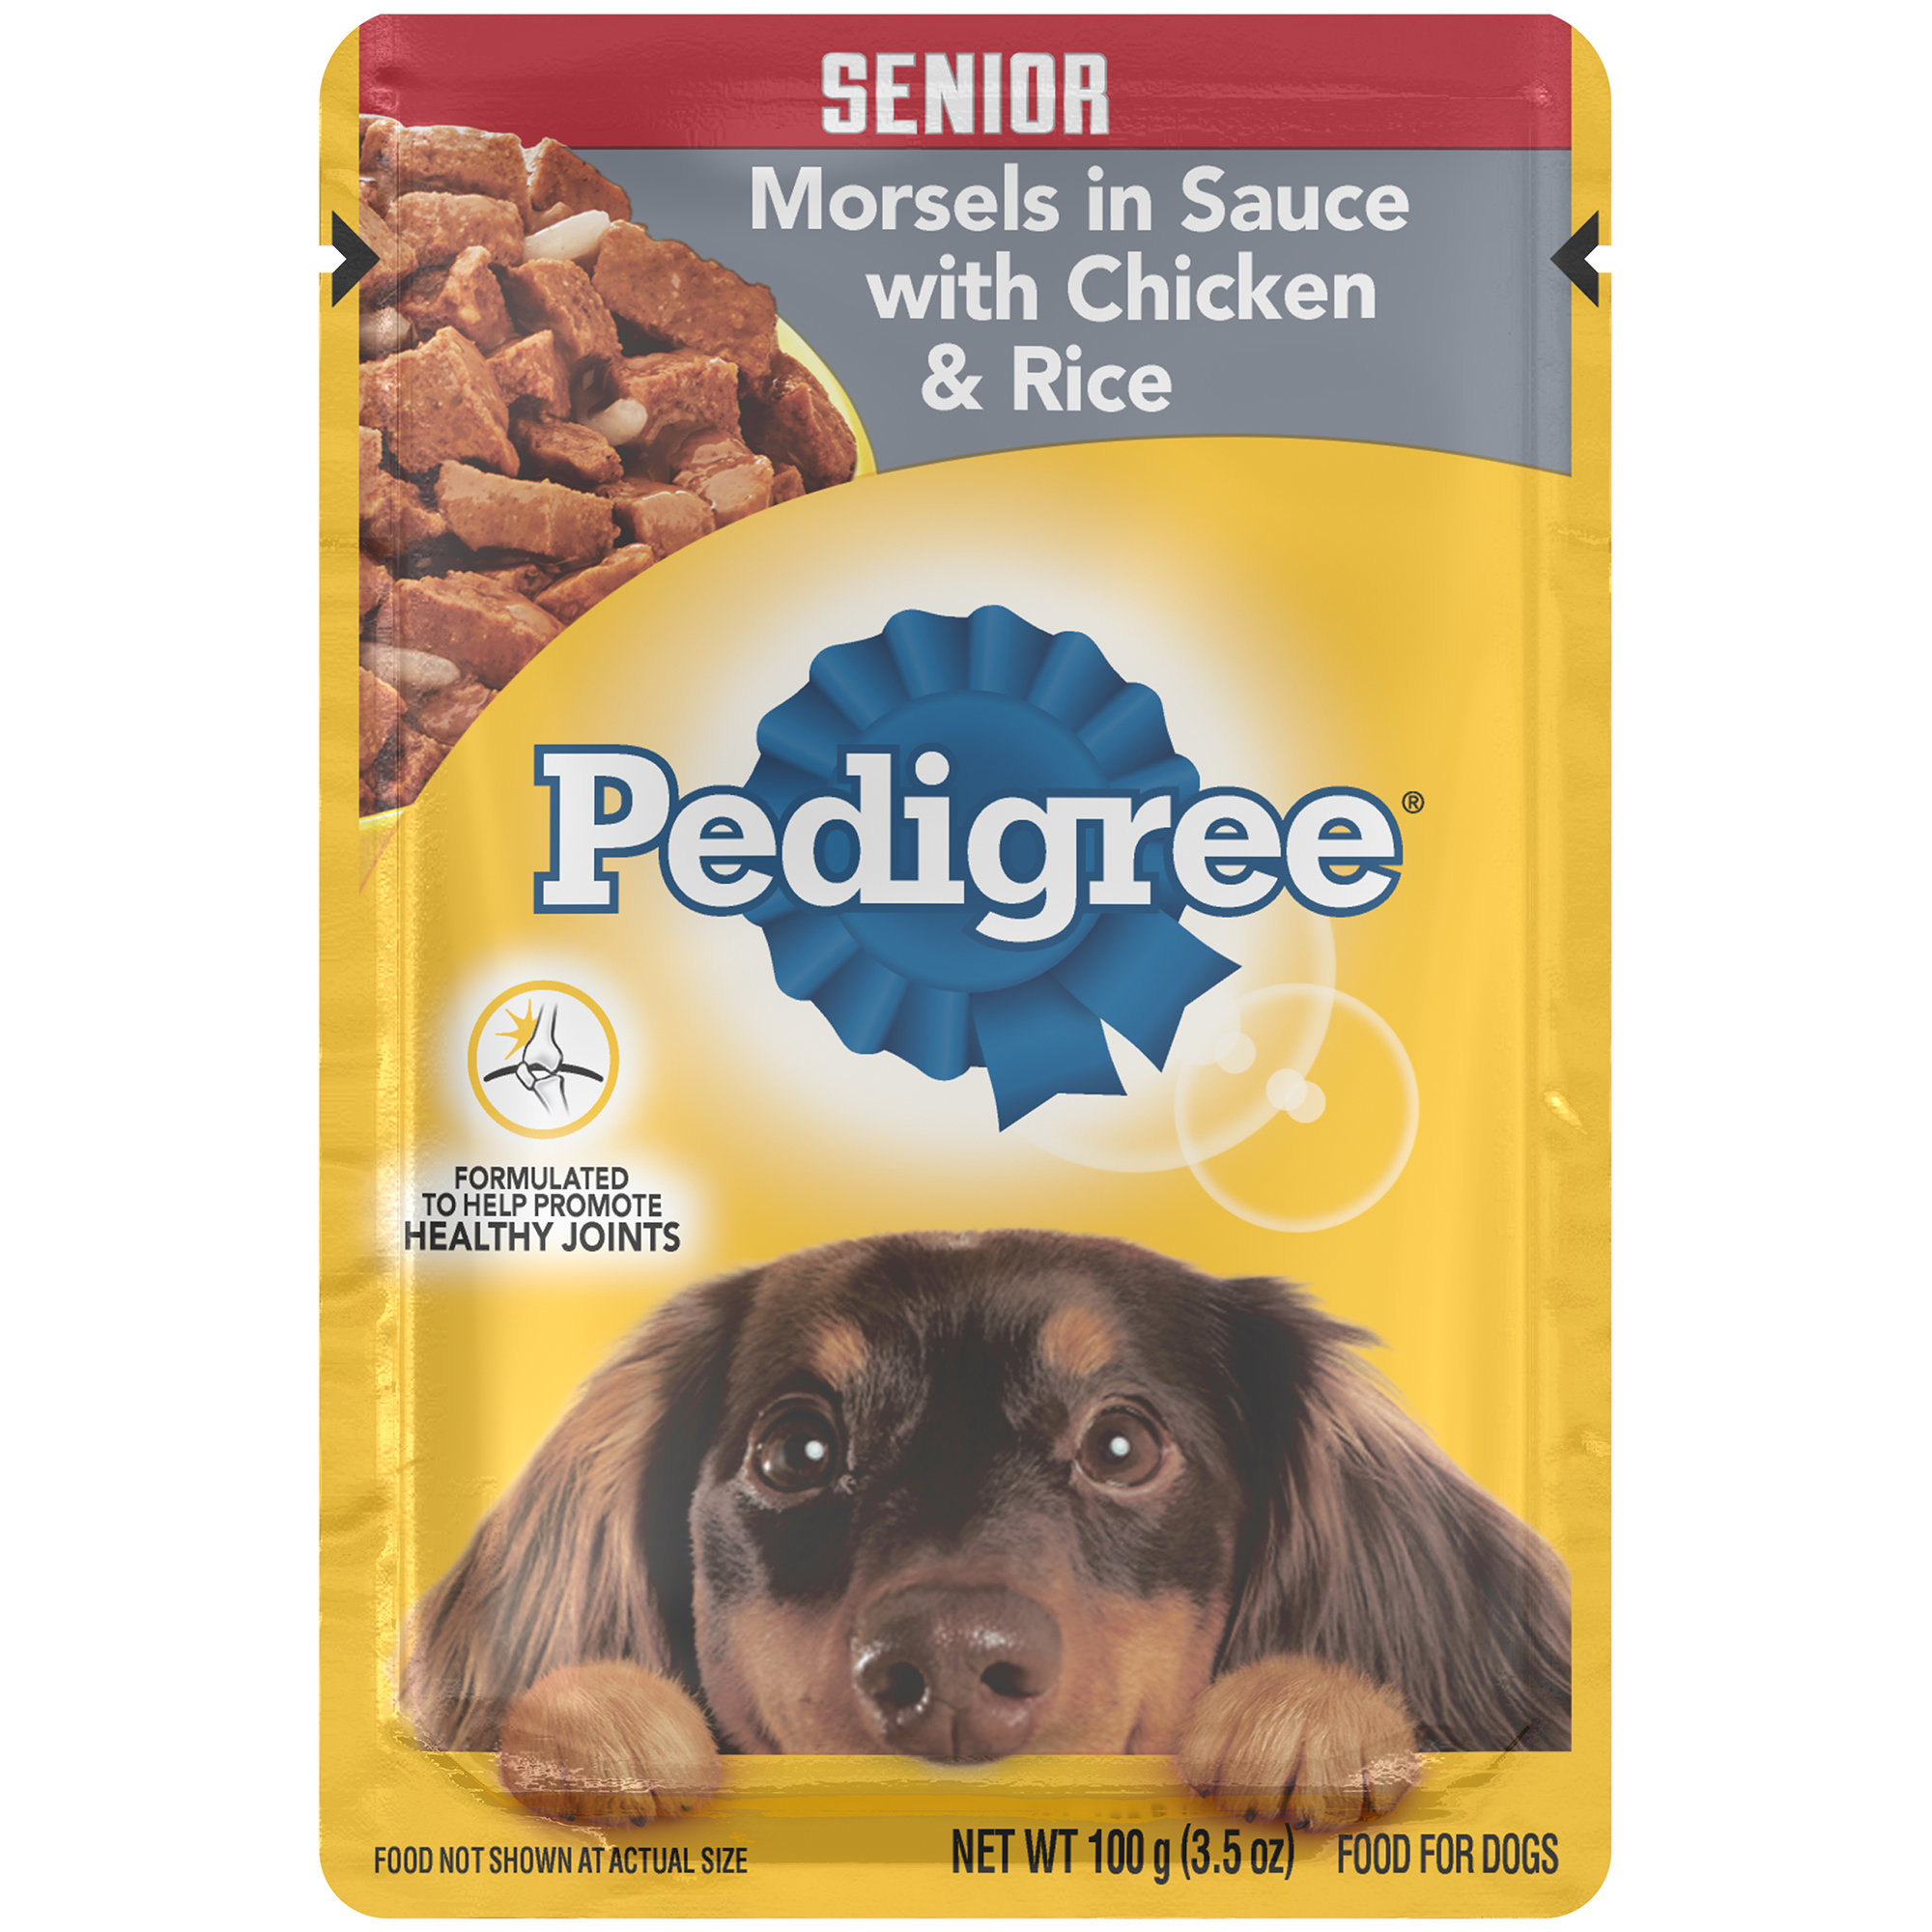 PEDIGREE Choice Cuts Senior Morsels in Sauce With Chicken and Rice Wet Dog Food 3.5 oz.